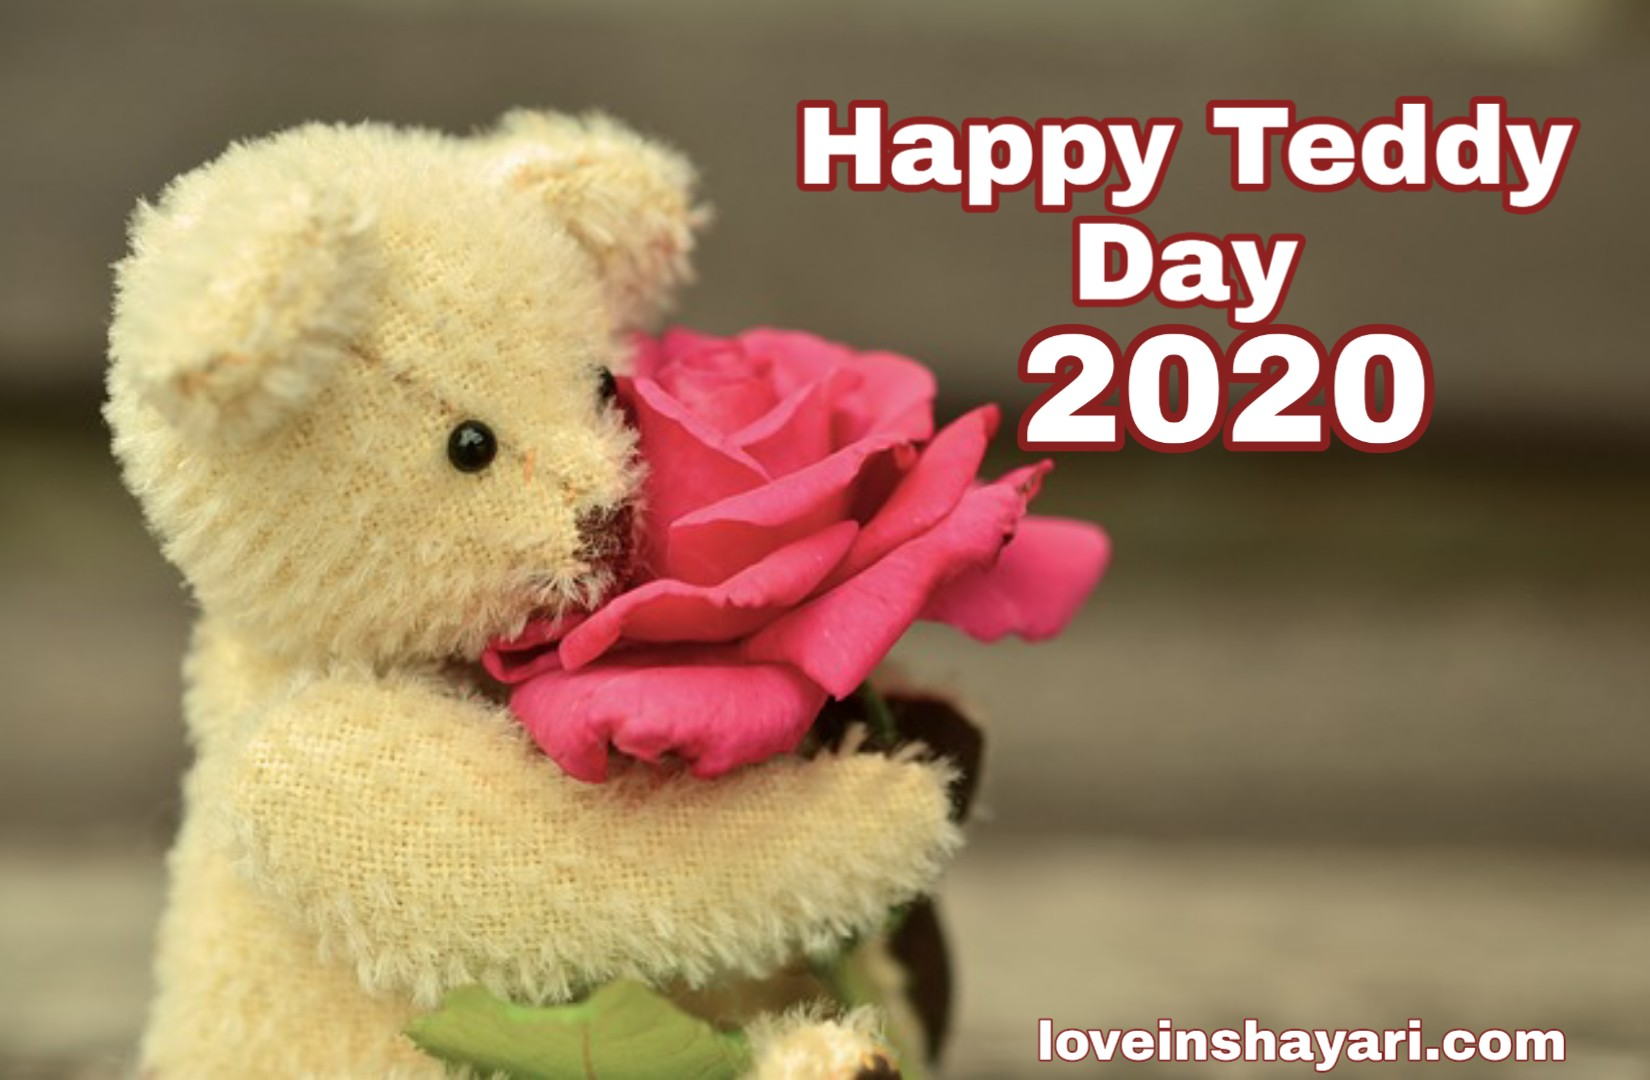 Photo of Happy Teddy Day 2020 shayari, wishes, images